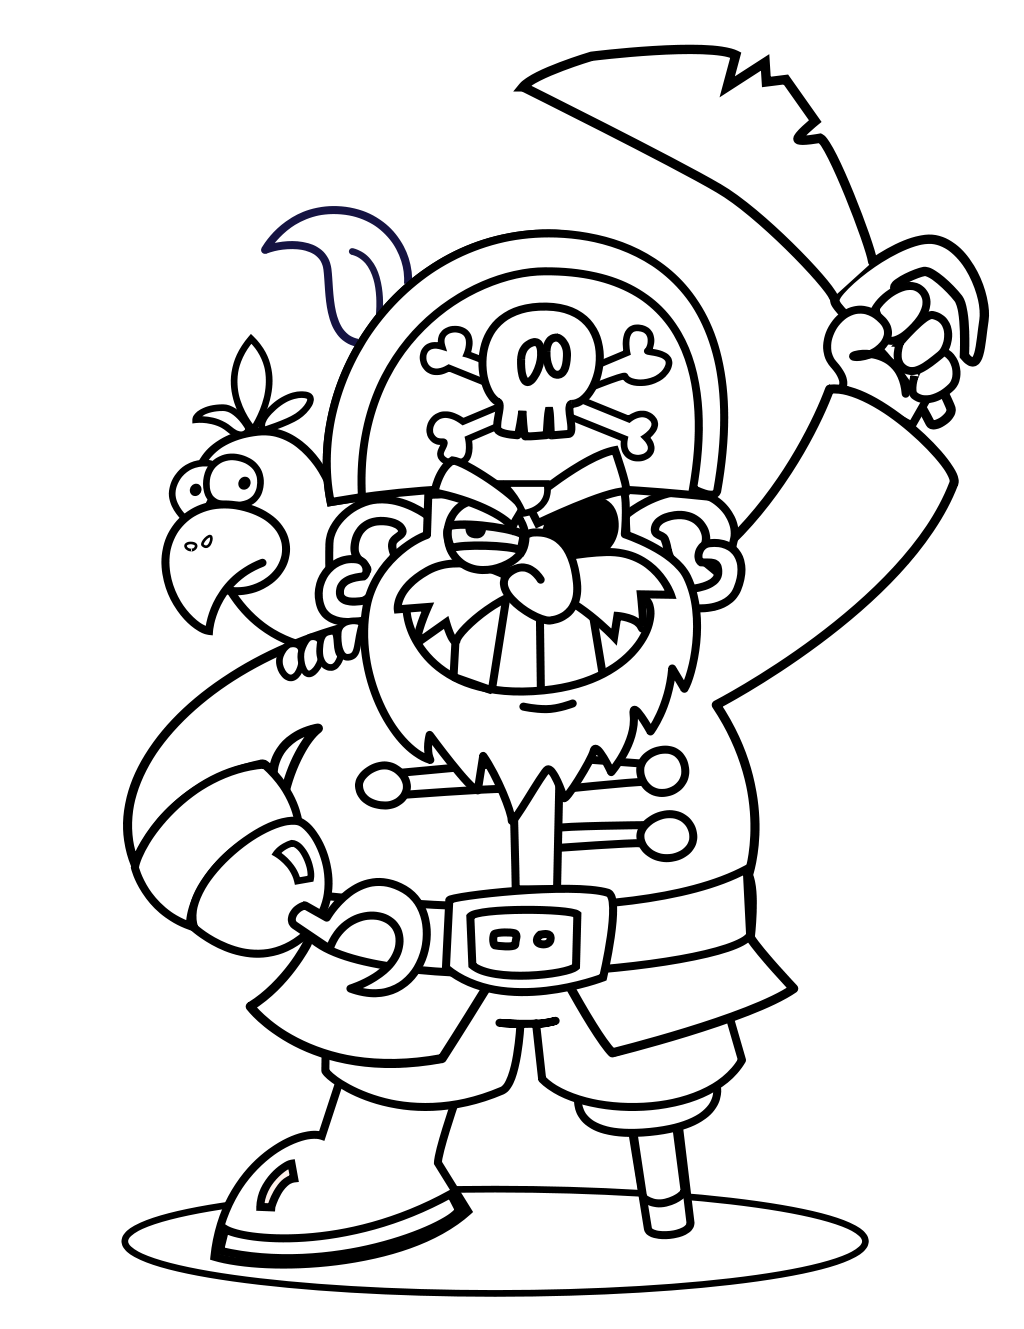 A pirate s life. Drawing pirates outline vector free stock